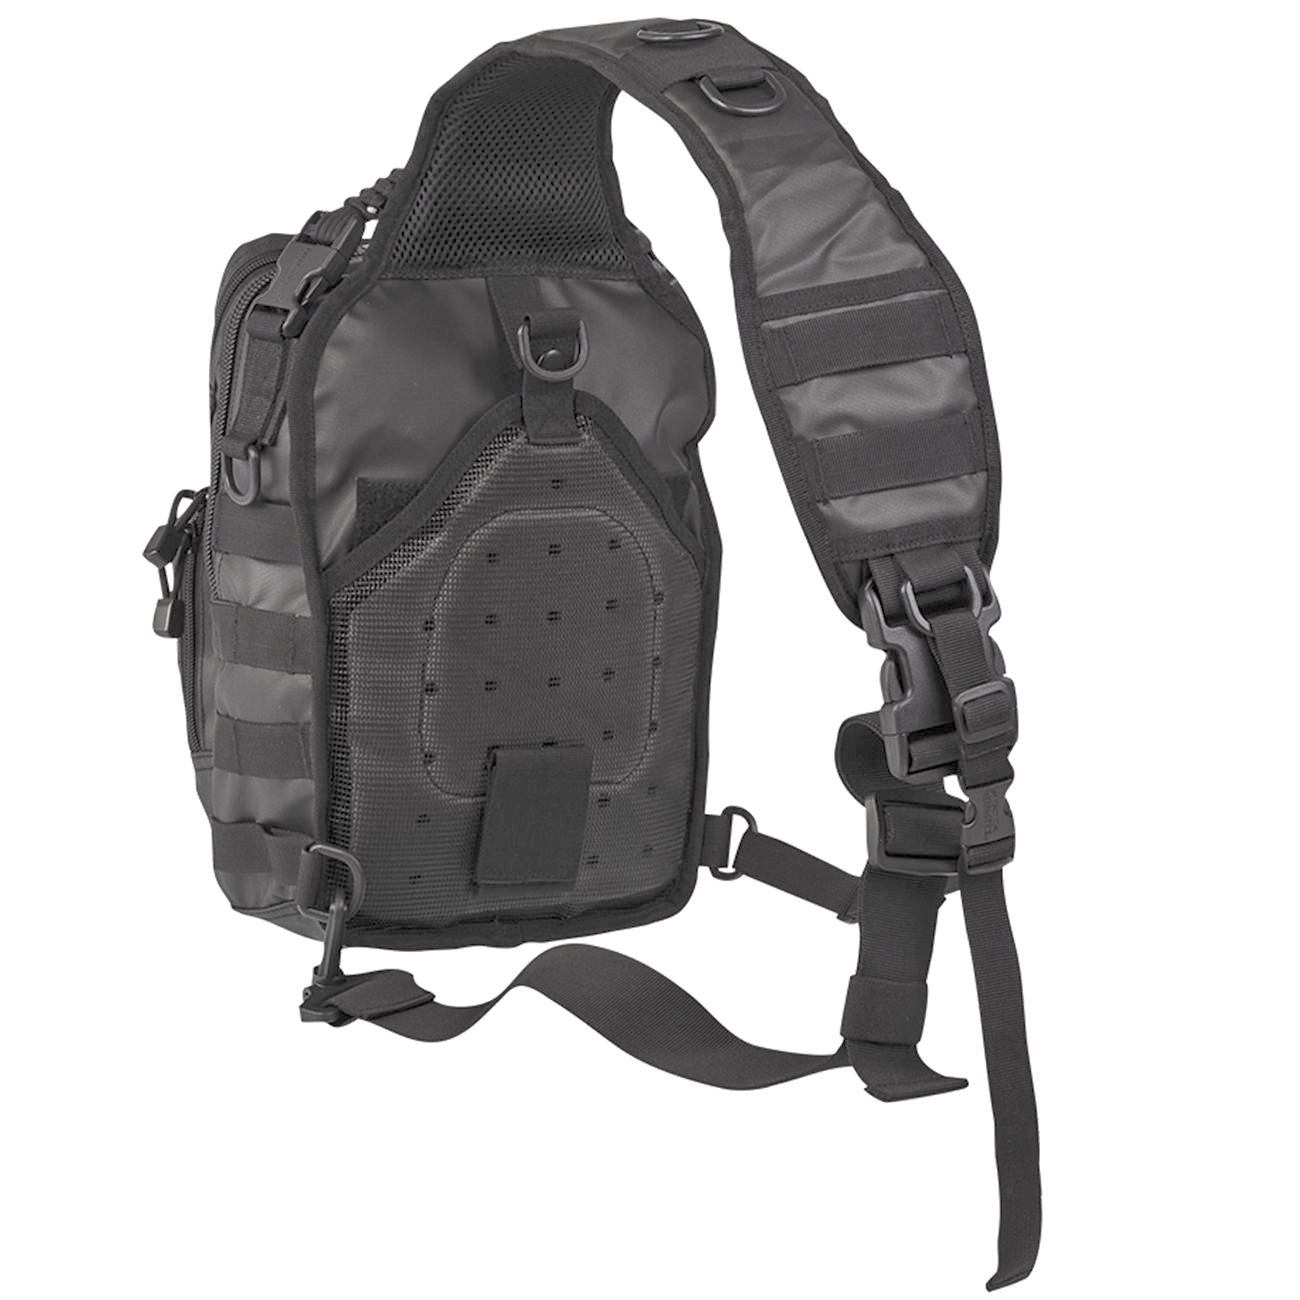 Mil-Tec Rucksack One Strap Assault Pack small 10 Liter tactical black 1